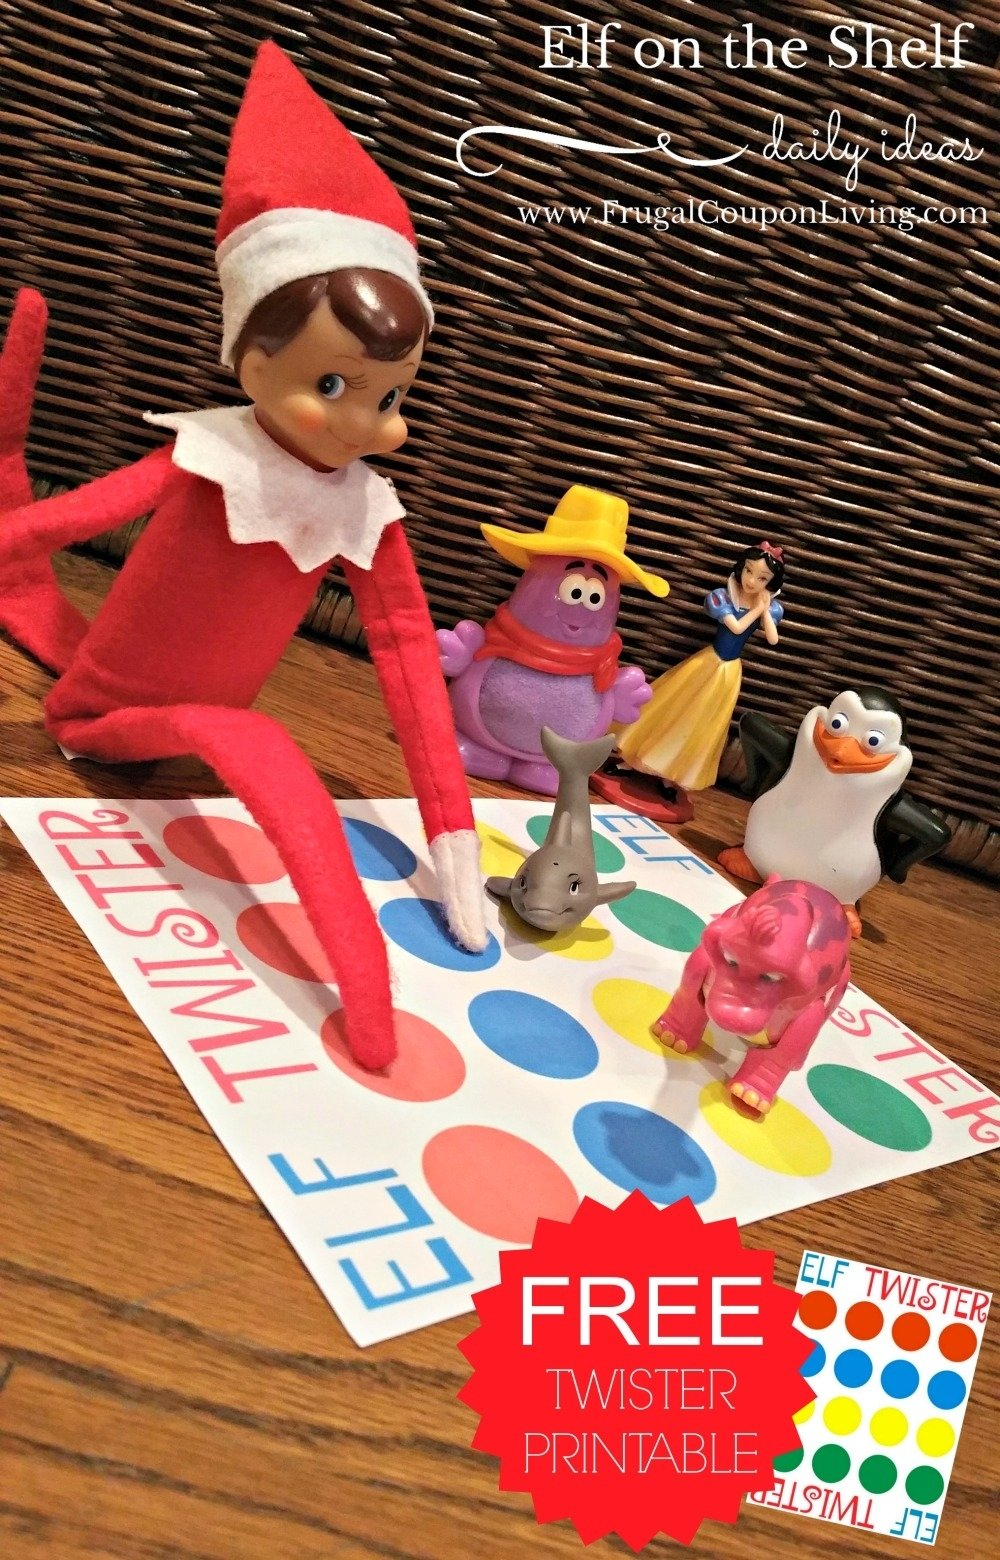 elf on the shelf ideas | elf twister printable